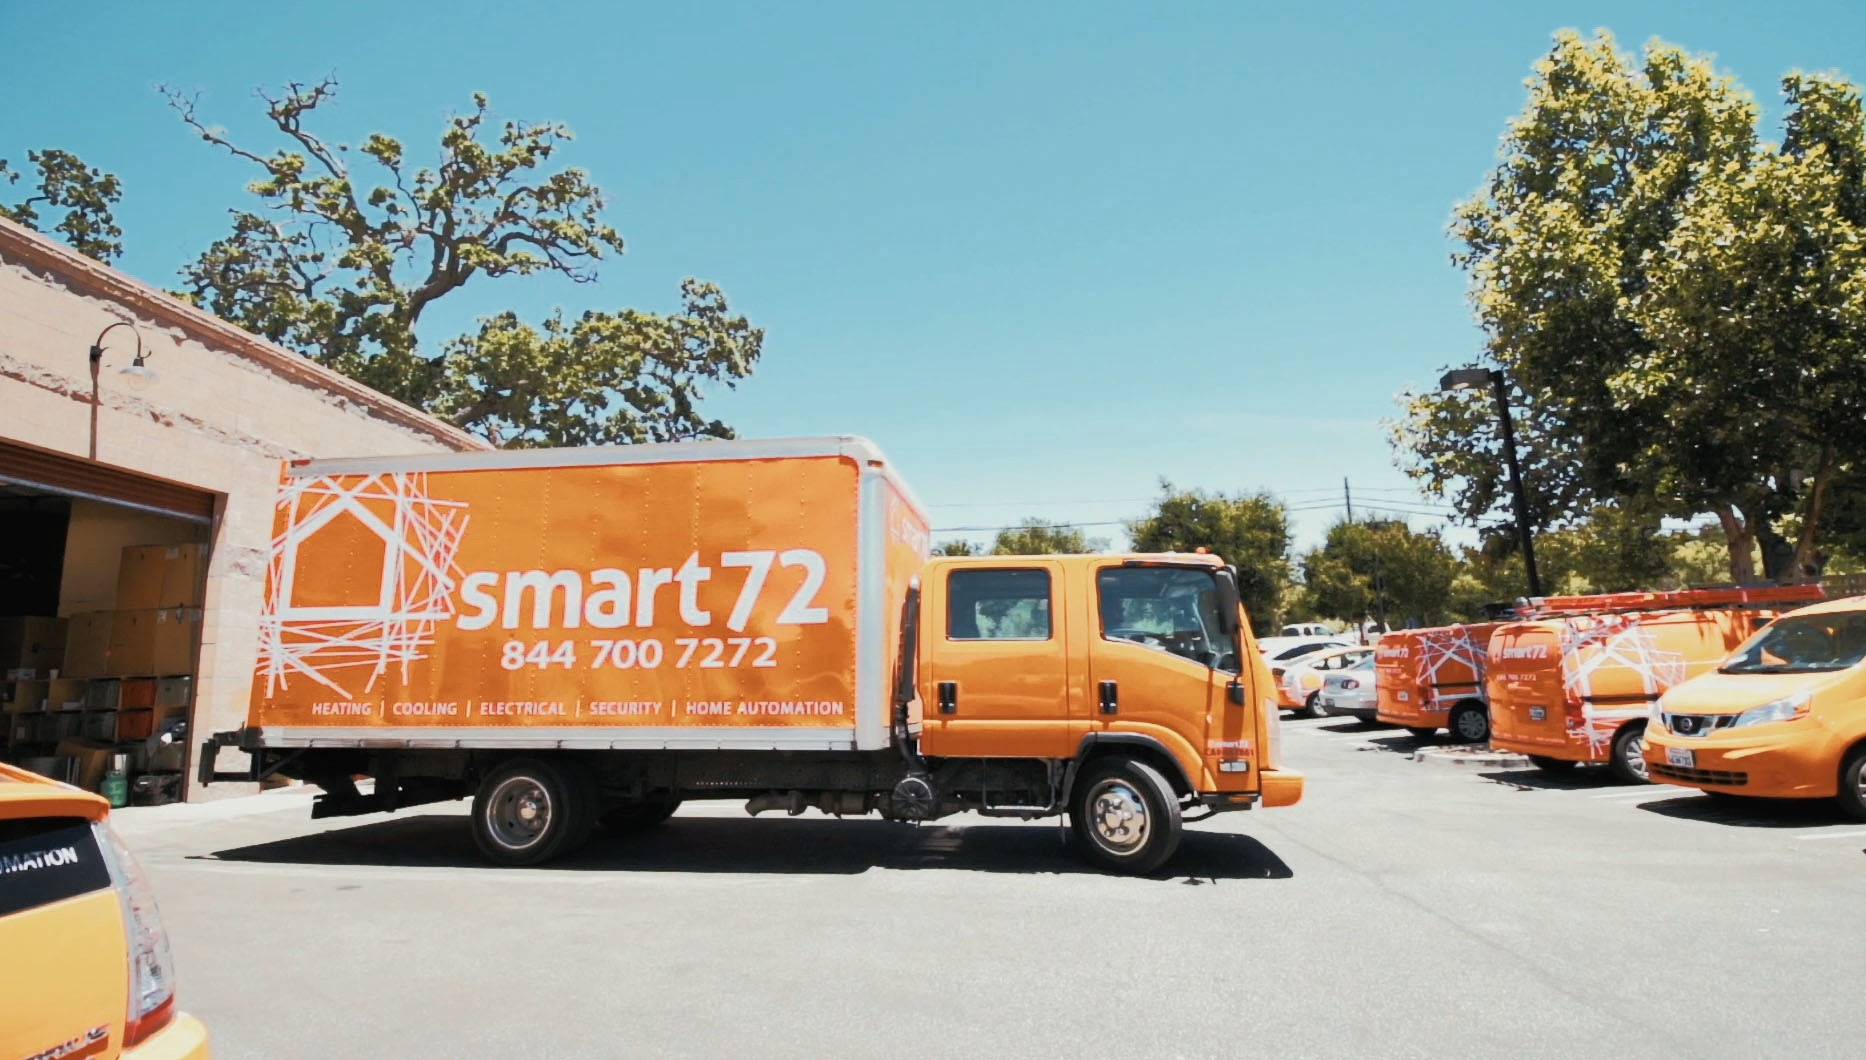 smart 72 (@smart72gilroy) Cover Image